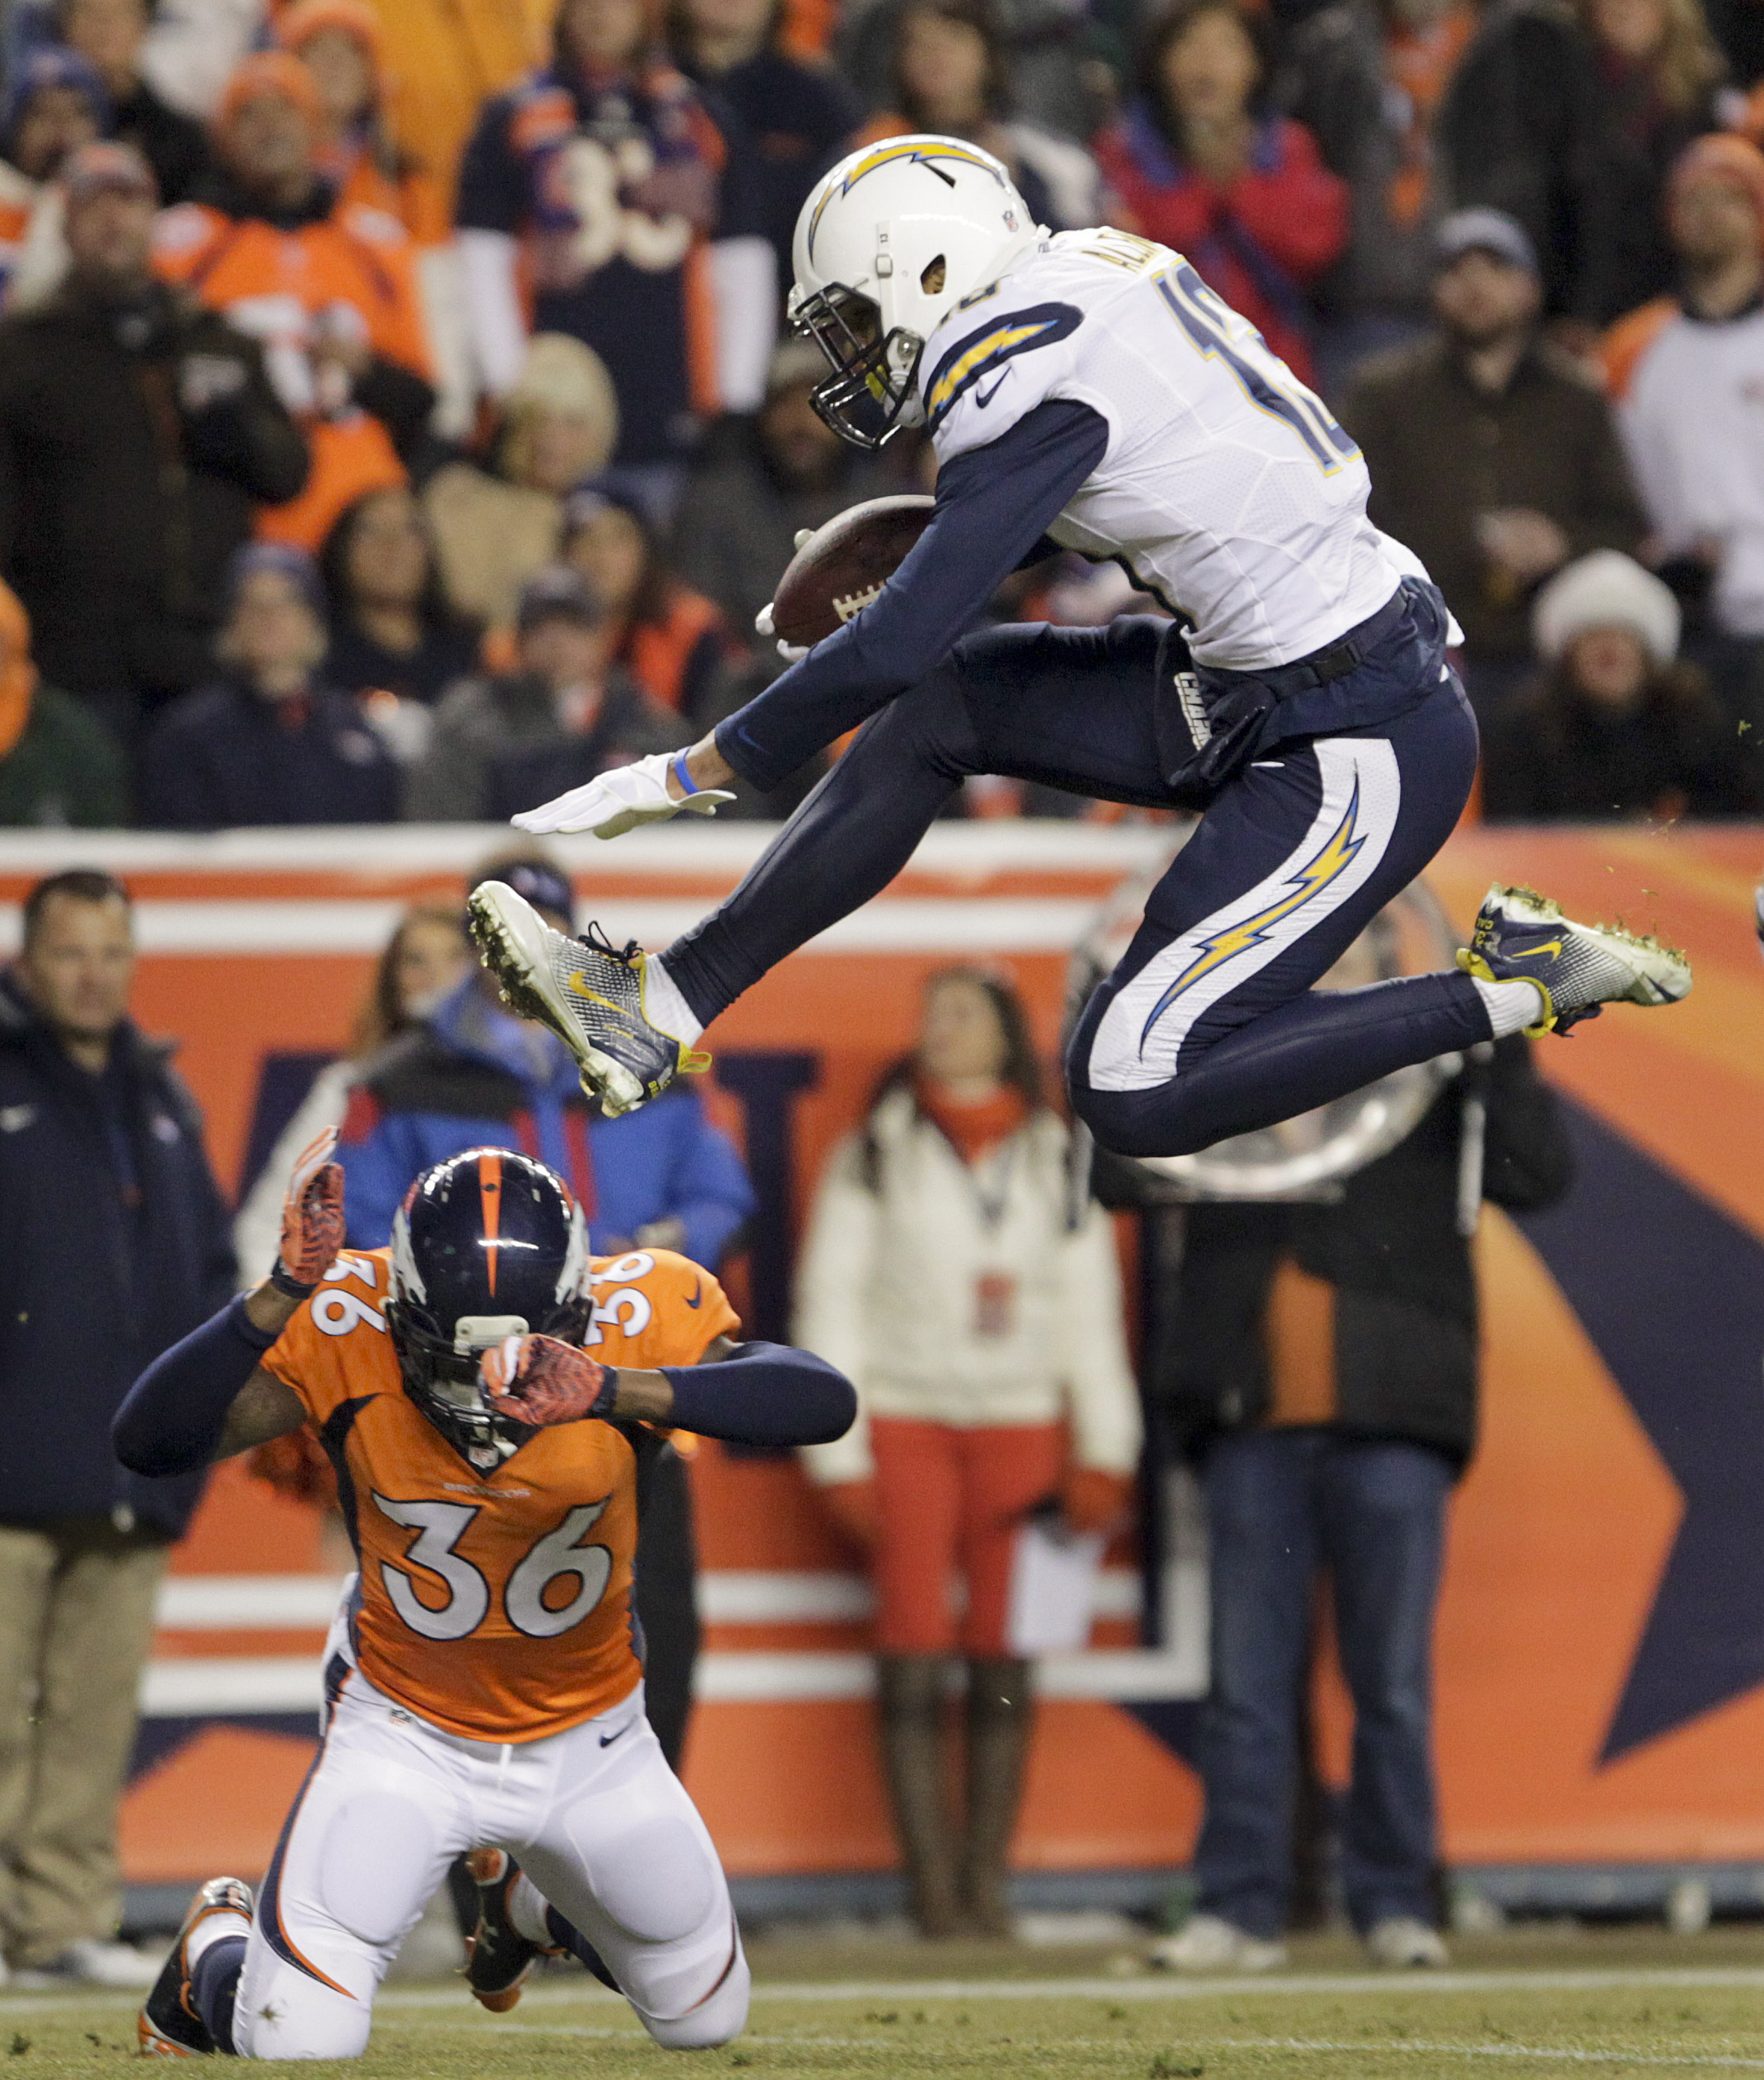 San Diego Chargers At Denver Broncos: Chargers Stun Broncos